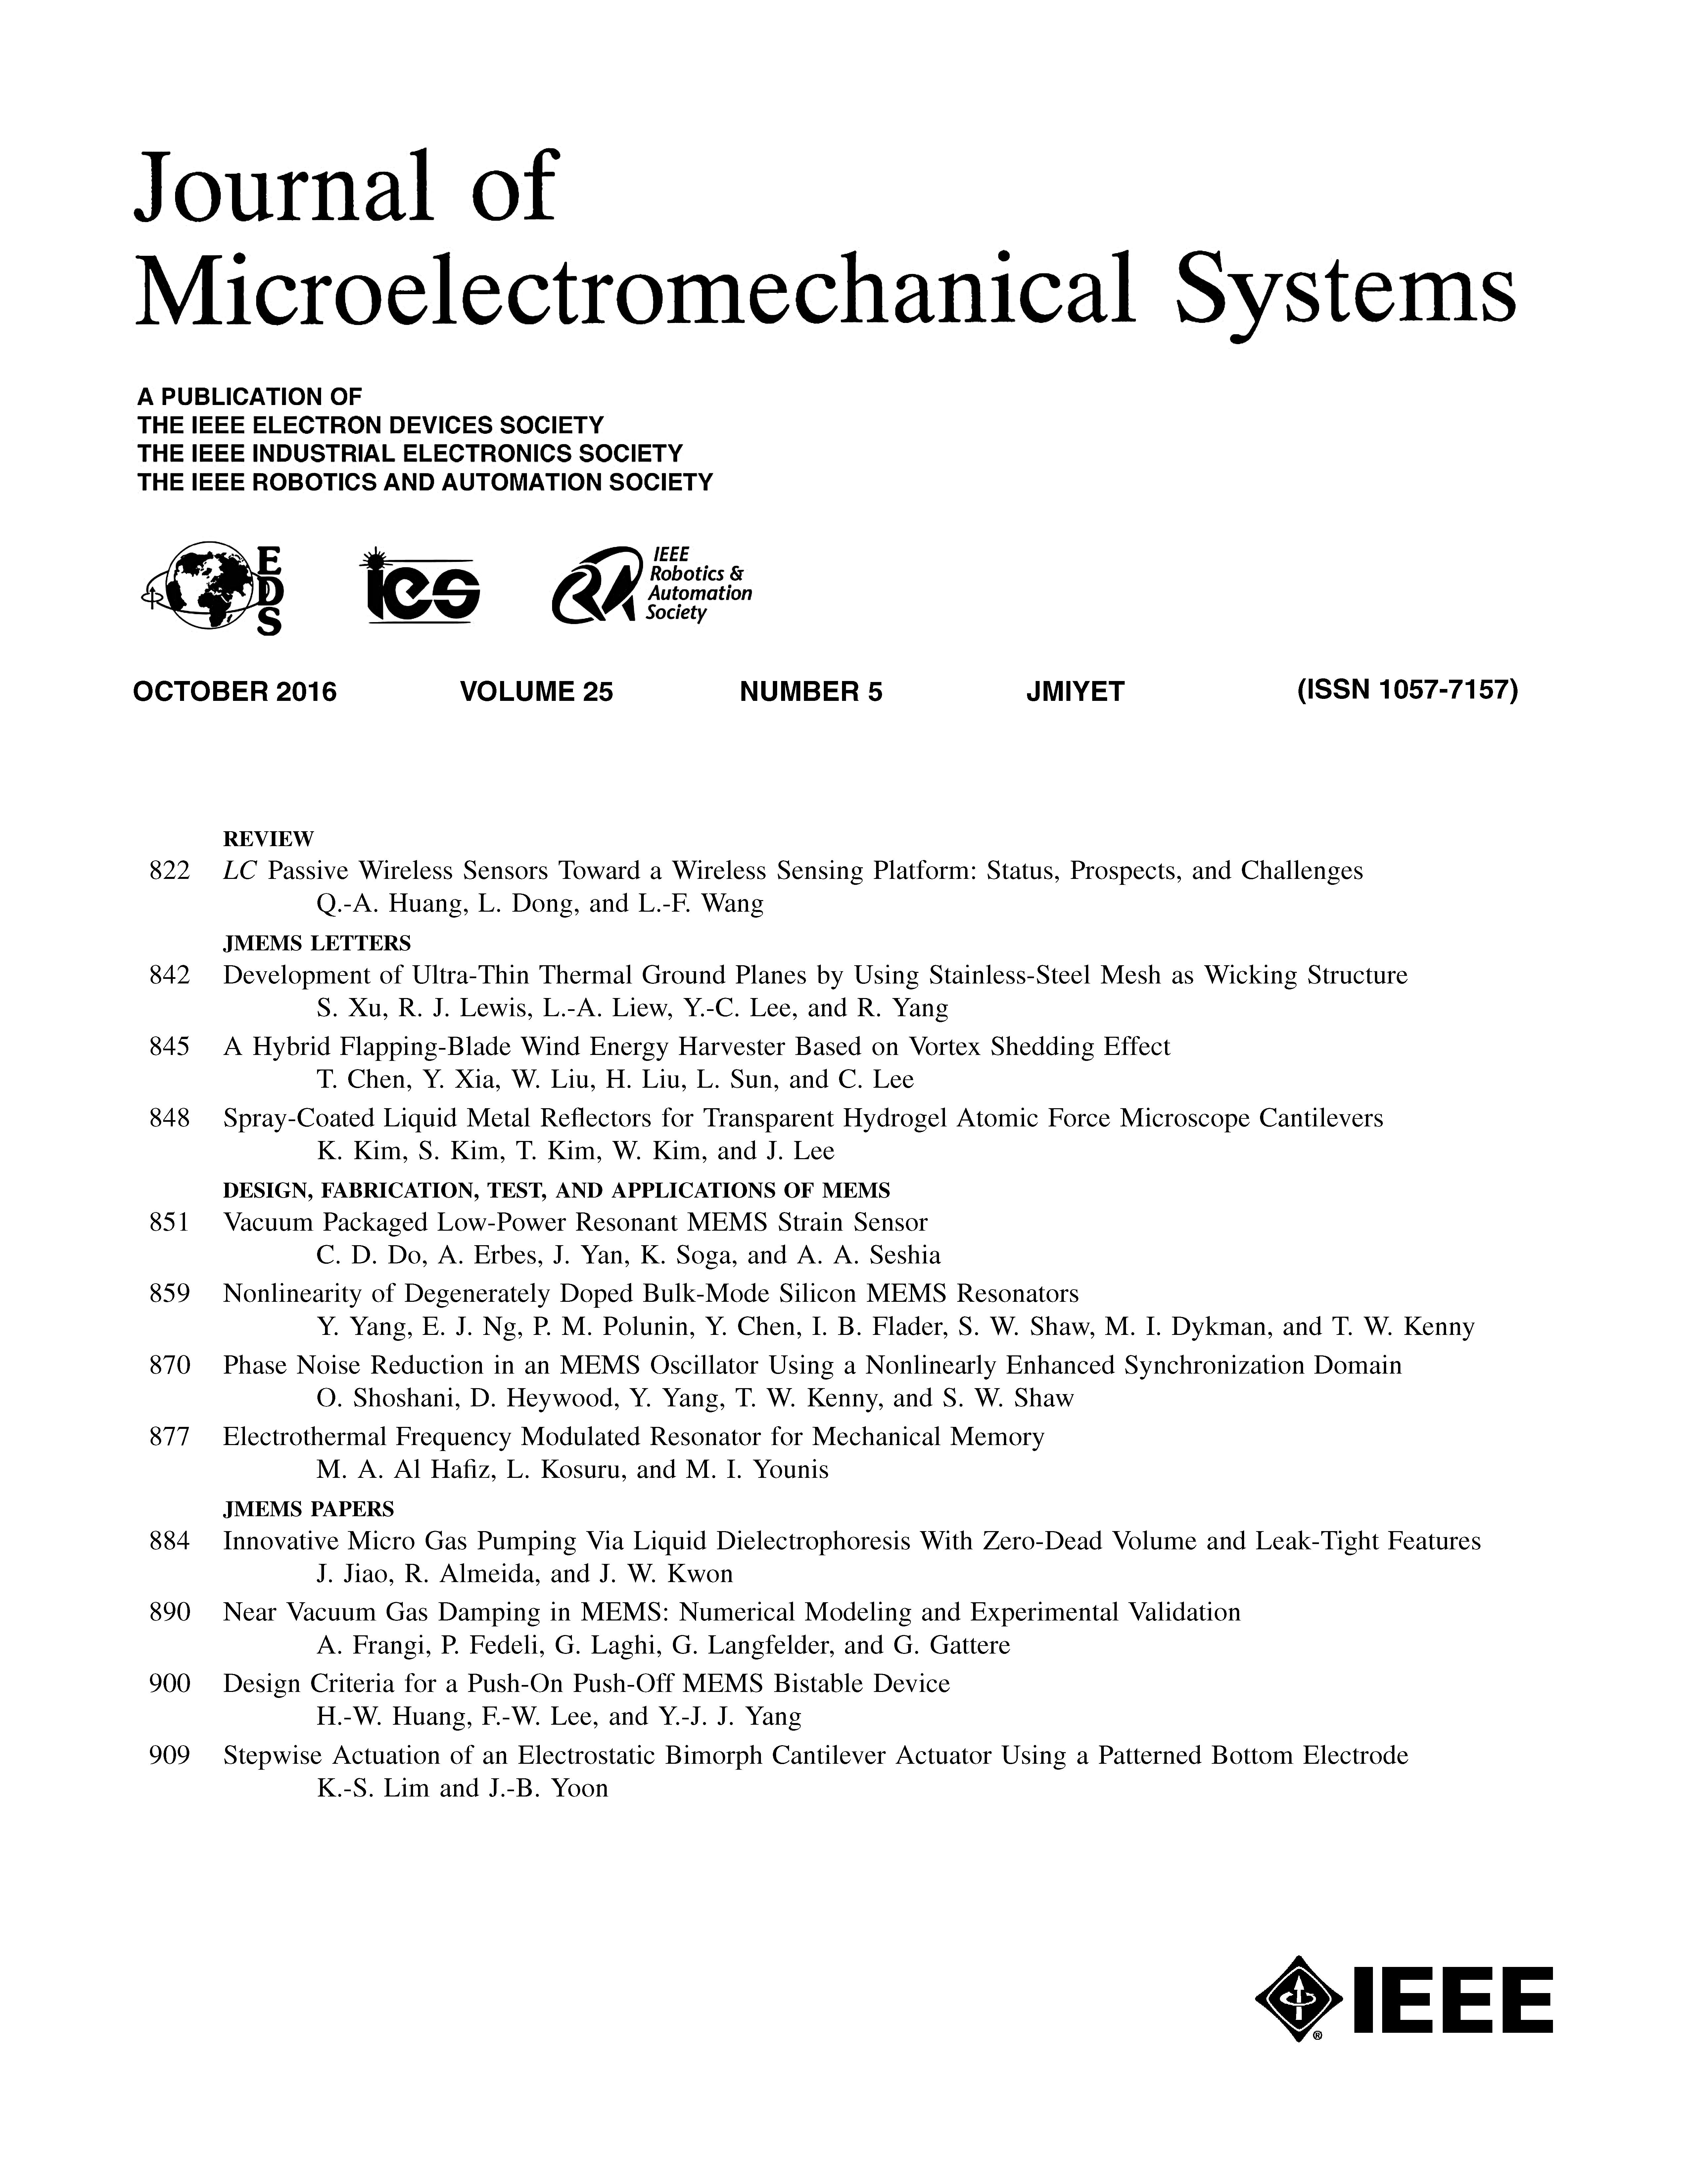 using a microelectromechanical system View all technologies available for licensing collaboration opportunities collaborations with industry and small businesses support the labs' primary missions and help companies bring exciting technologies to the marketplace as new and improved products.